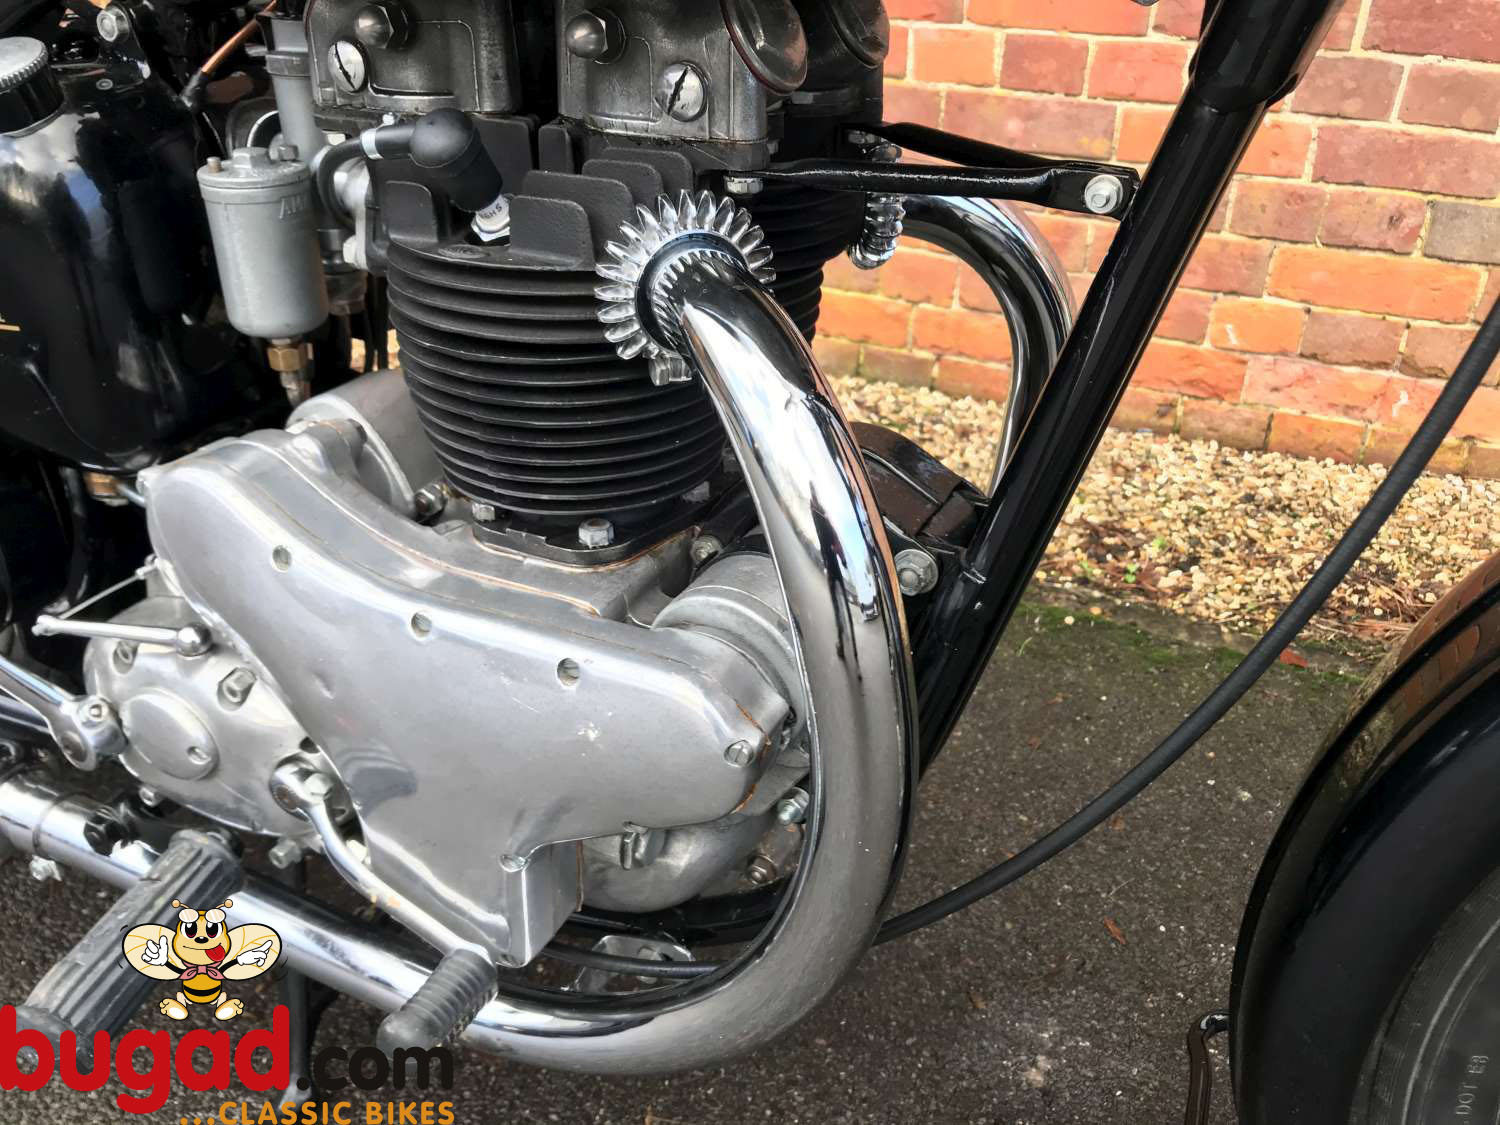 BSA A7 500cc - 1949 - Long Stroke - Plunger - Restored For Sale (picture 3 of 12)